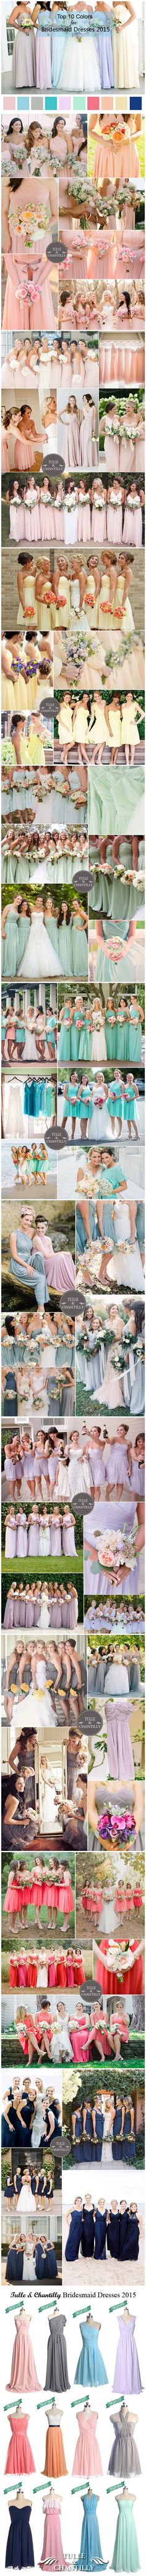 2015 Wedding Color Trends and Ideas - Top 10 Colors for Spring/Summer Bridesmaid Dresses 2015